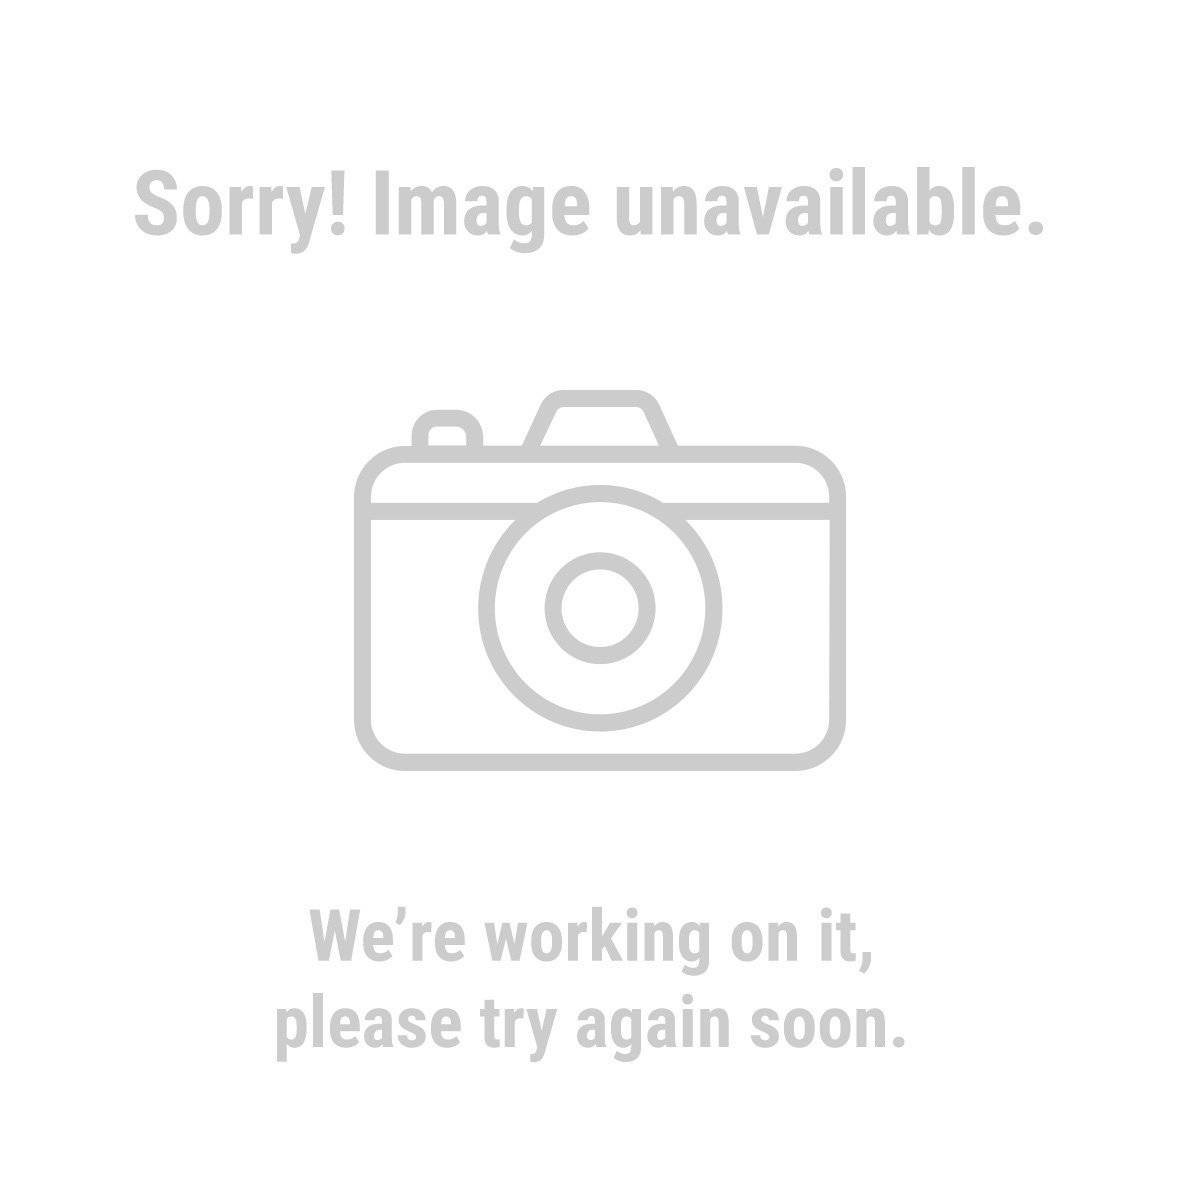 Pittsburgh 94725 36 Piece SAE & Metric Long Reach Hex Key Set